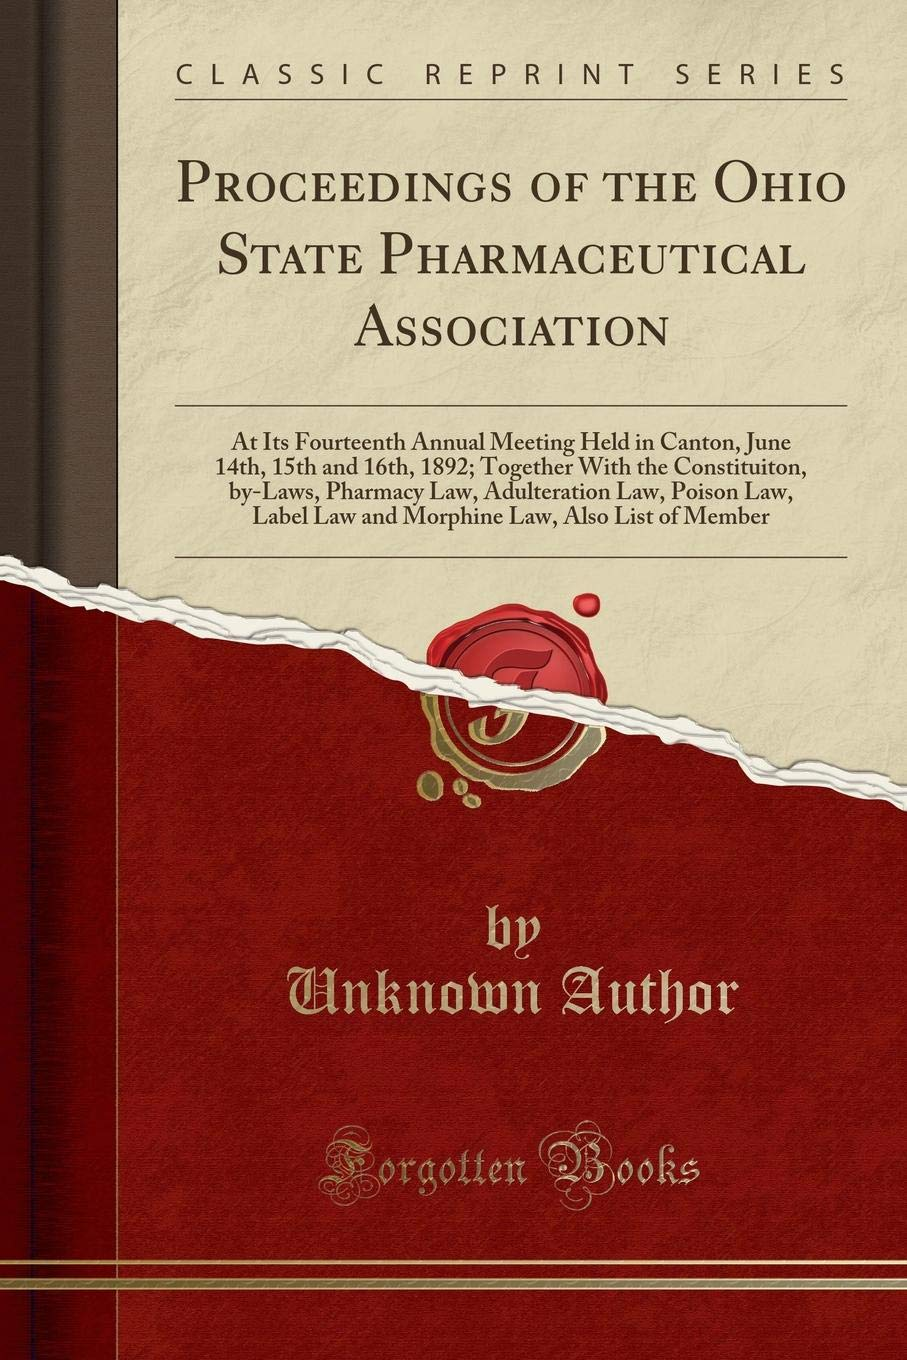 Download Proceedings of the Ohio State Pharmaceutical Association: At Its Fourteenth Annual Meeting Held in Canton, June 14th, 15th and 16th, 1892; Together ... Poison Law, Label Law and Morphine Law, Als ebook